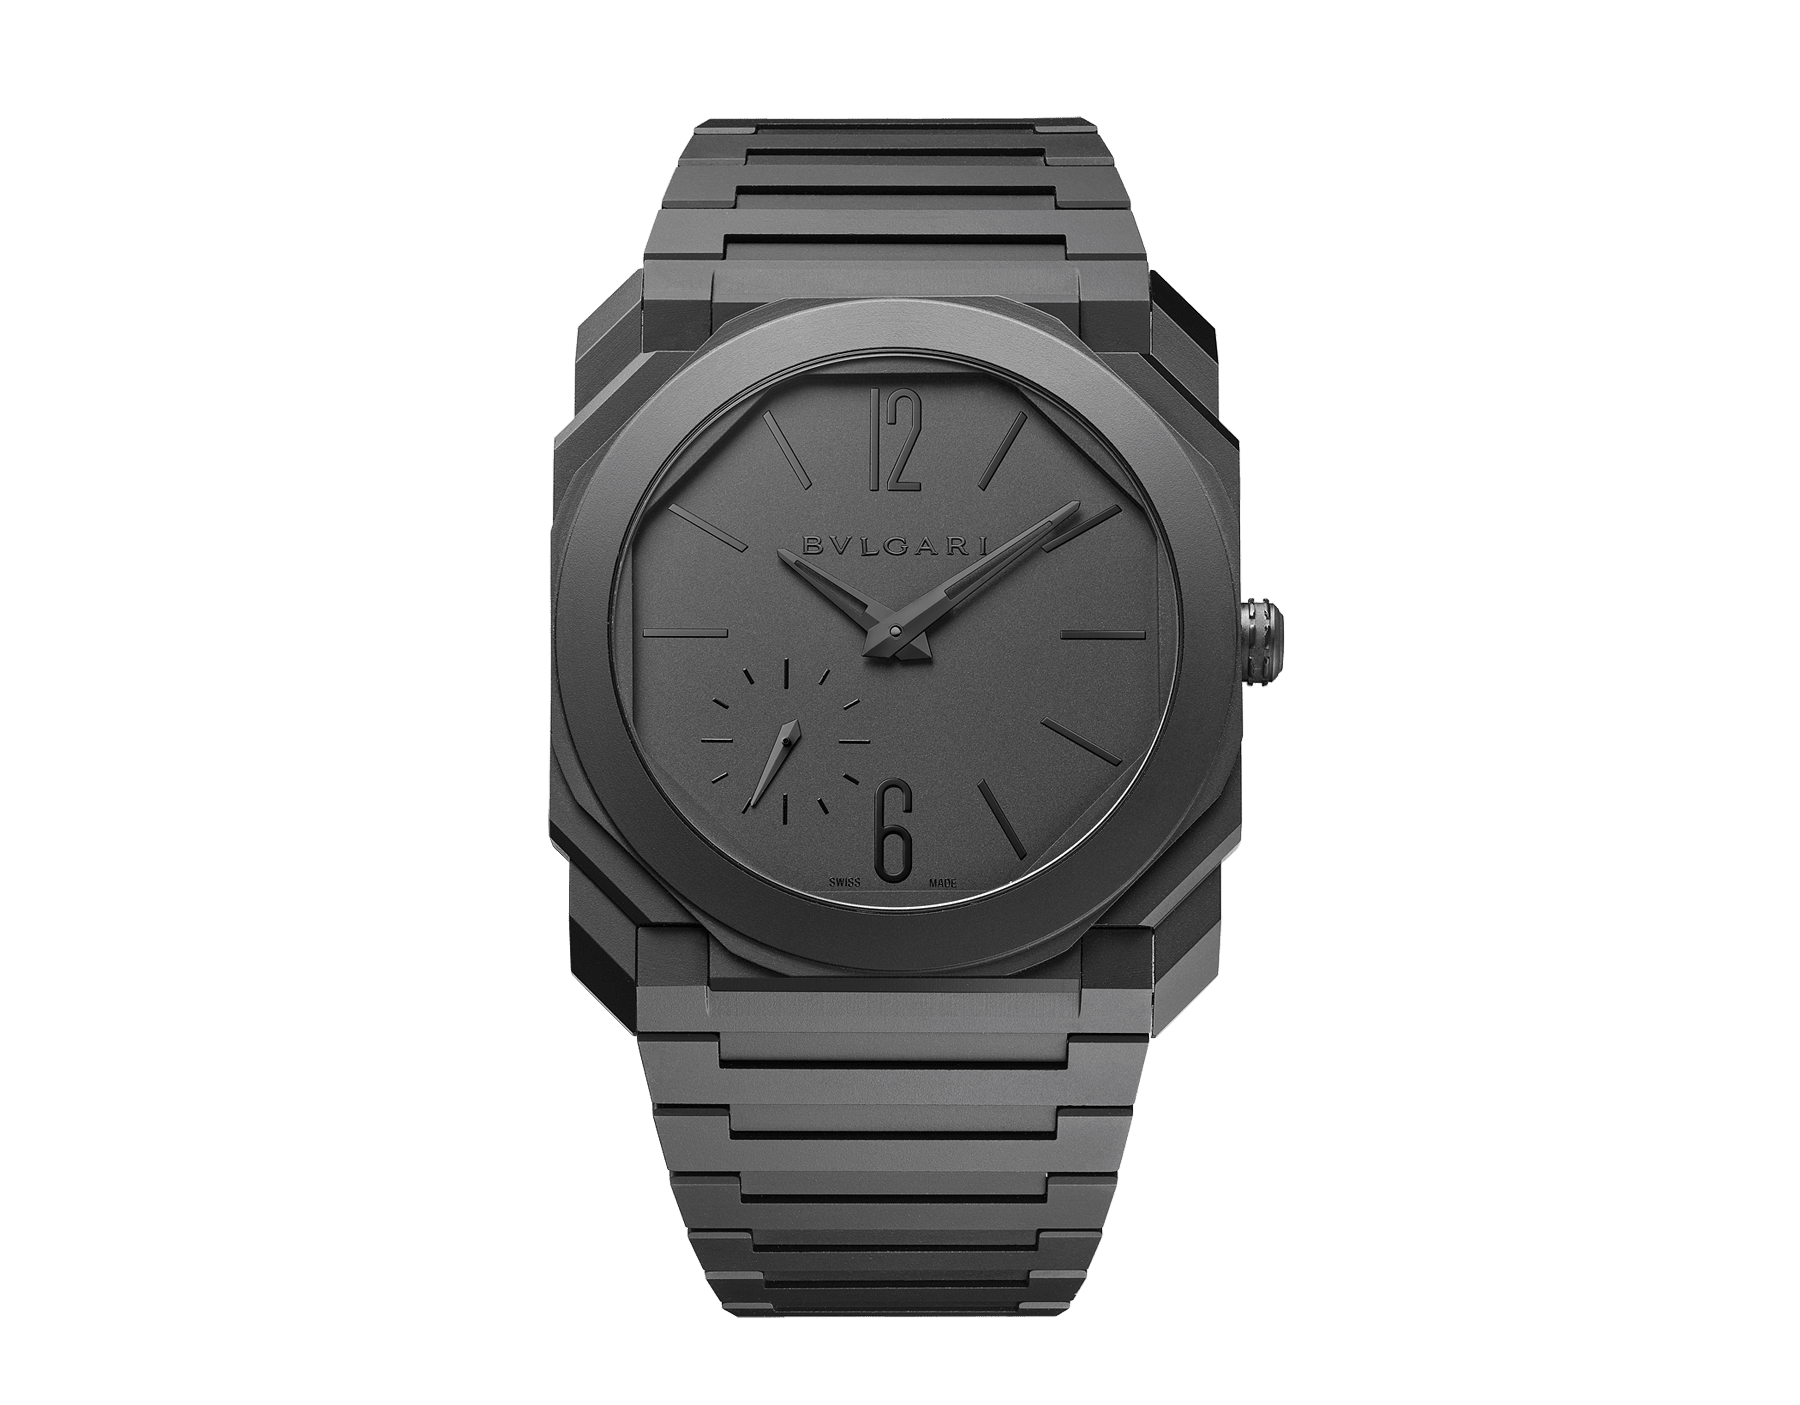 Octo Finissimo Automatic watch in black sandblasted ceramic with extra-thin mechanical manufacture movement, automatic winding with platinum micro rotor, small seconds and transparent case back. Water-resistant up to 30 meters 103077 image 1